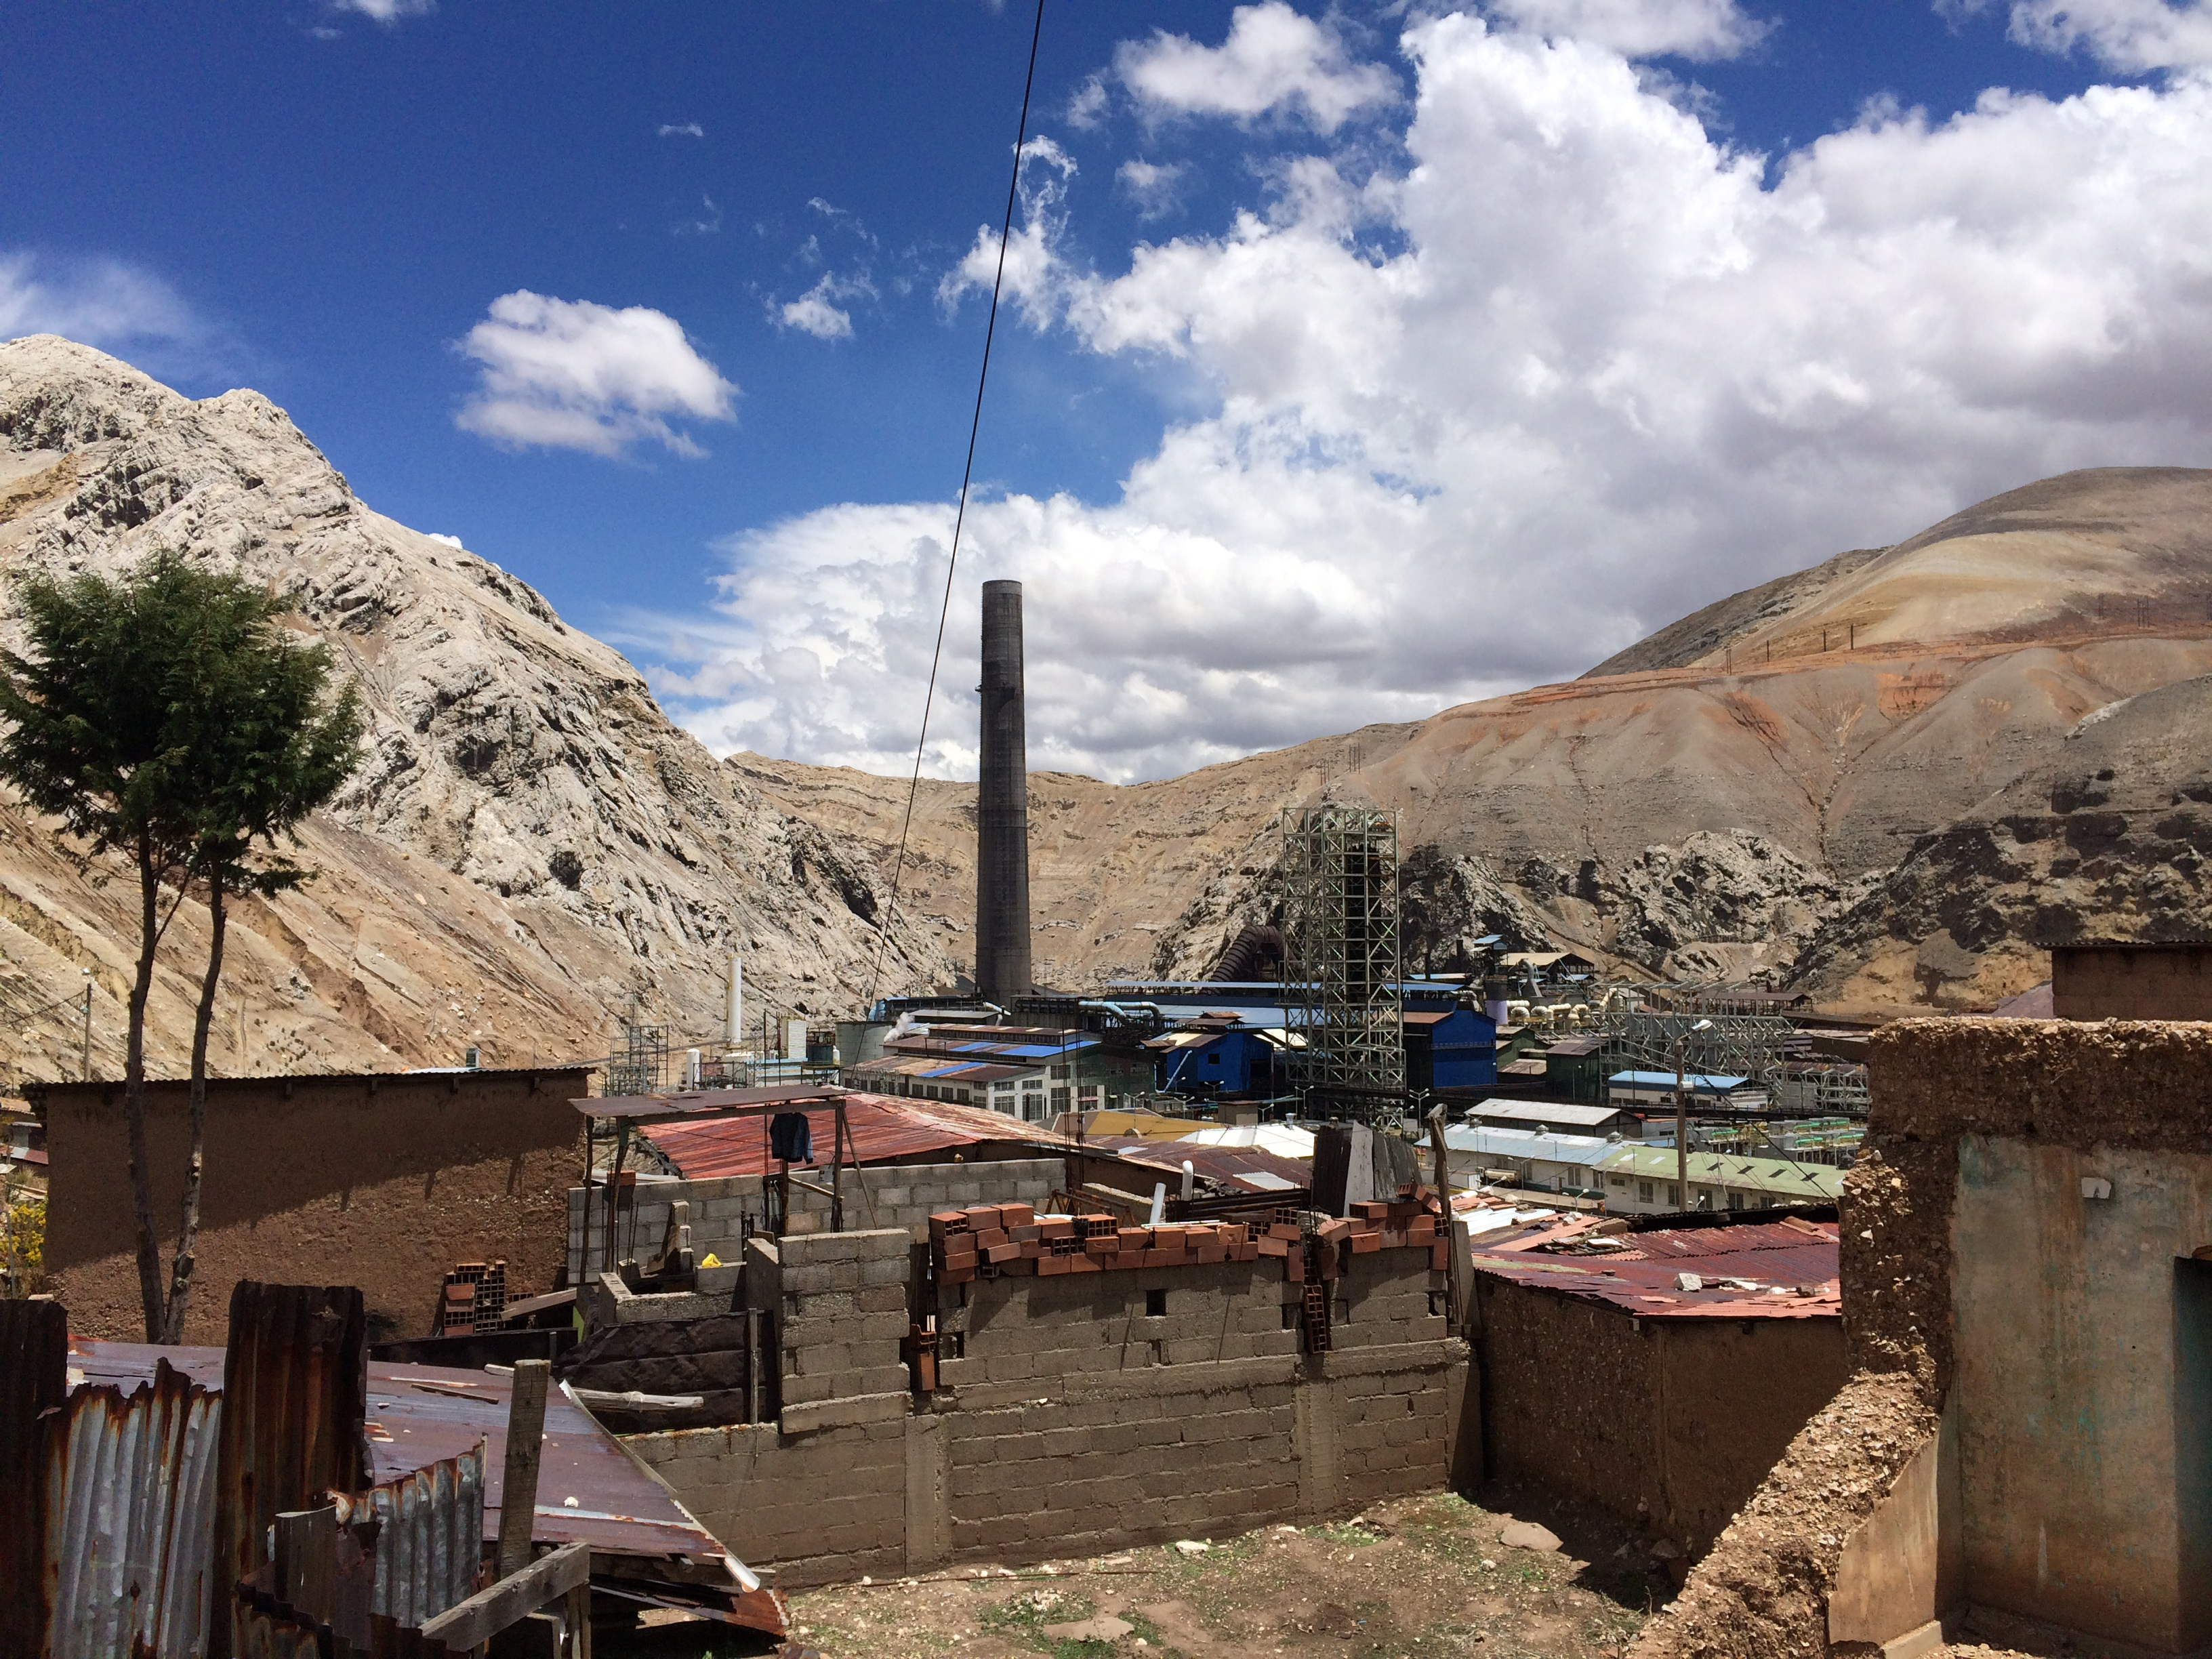 La Oroya, Peru is often considered one of the most contaminated places in the world due to the toxic emissions from a now dormant metallurgical complex.